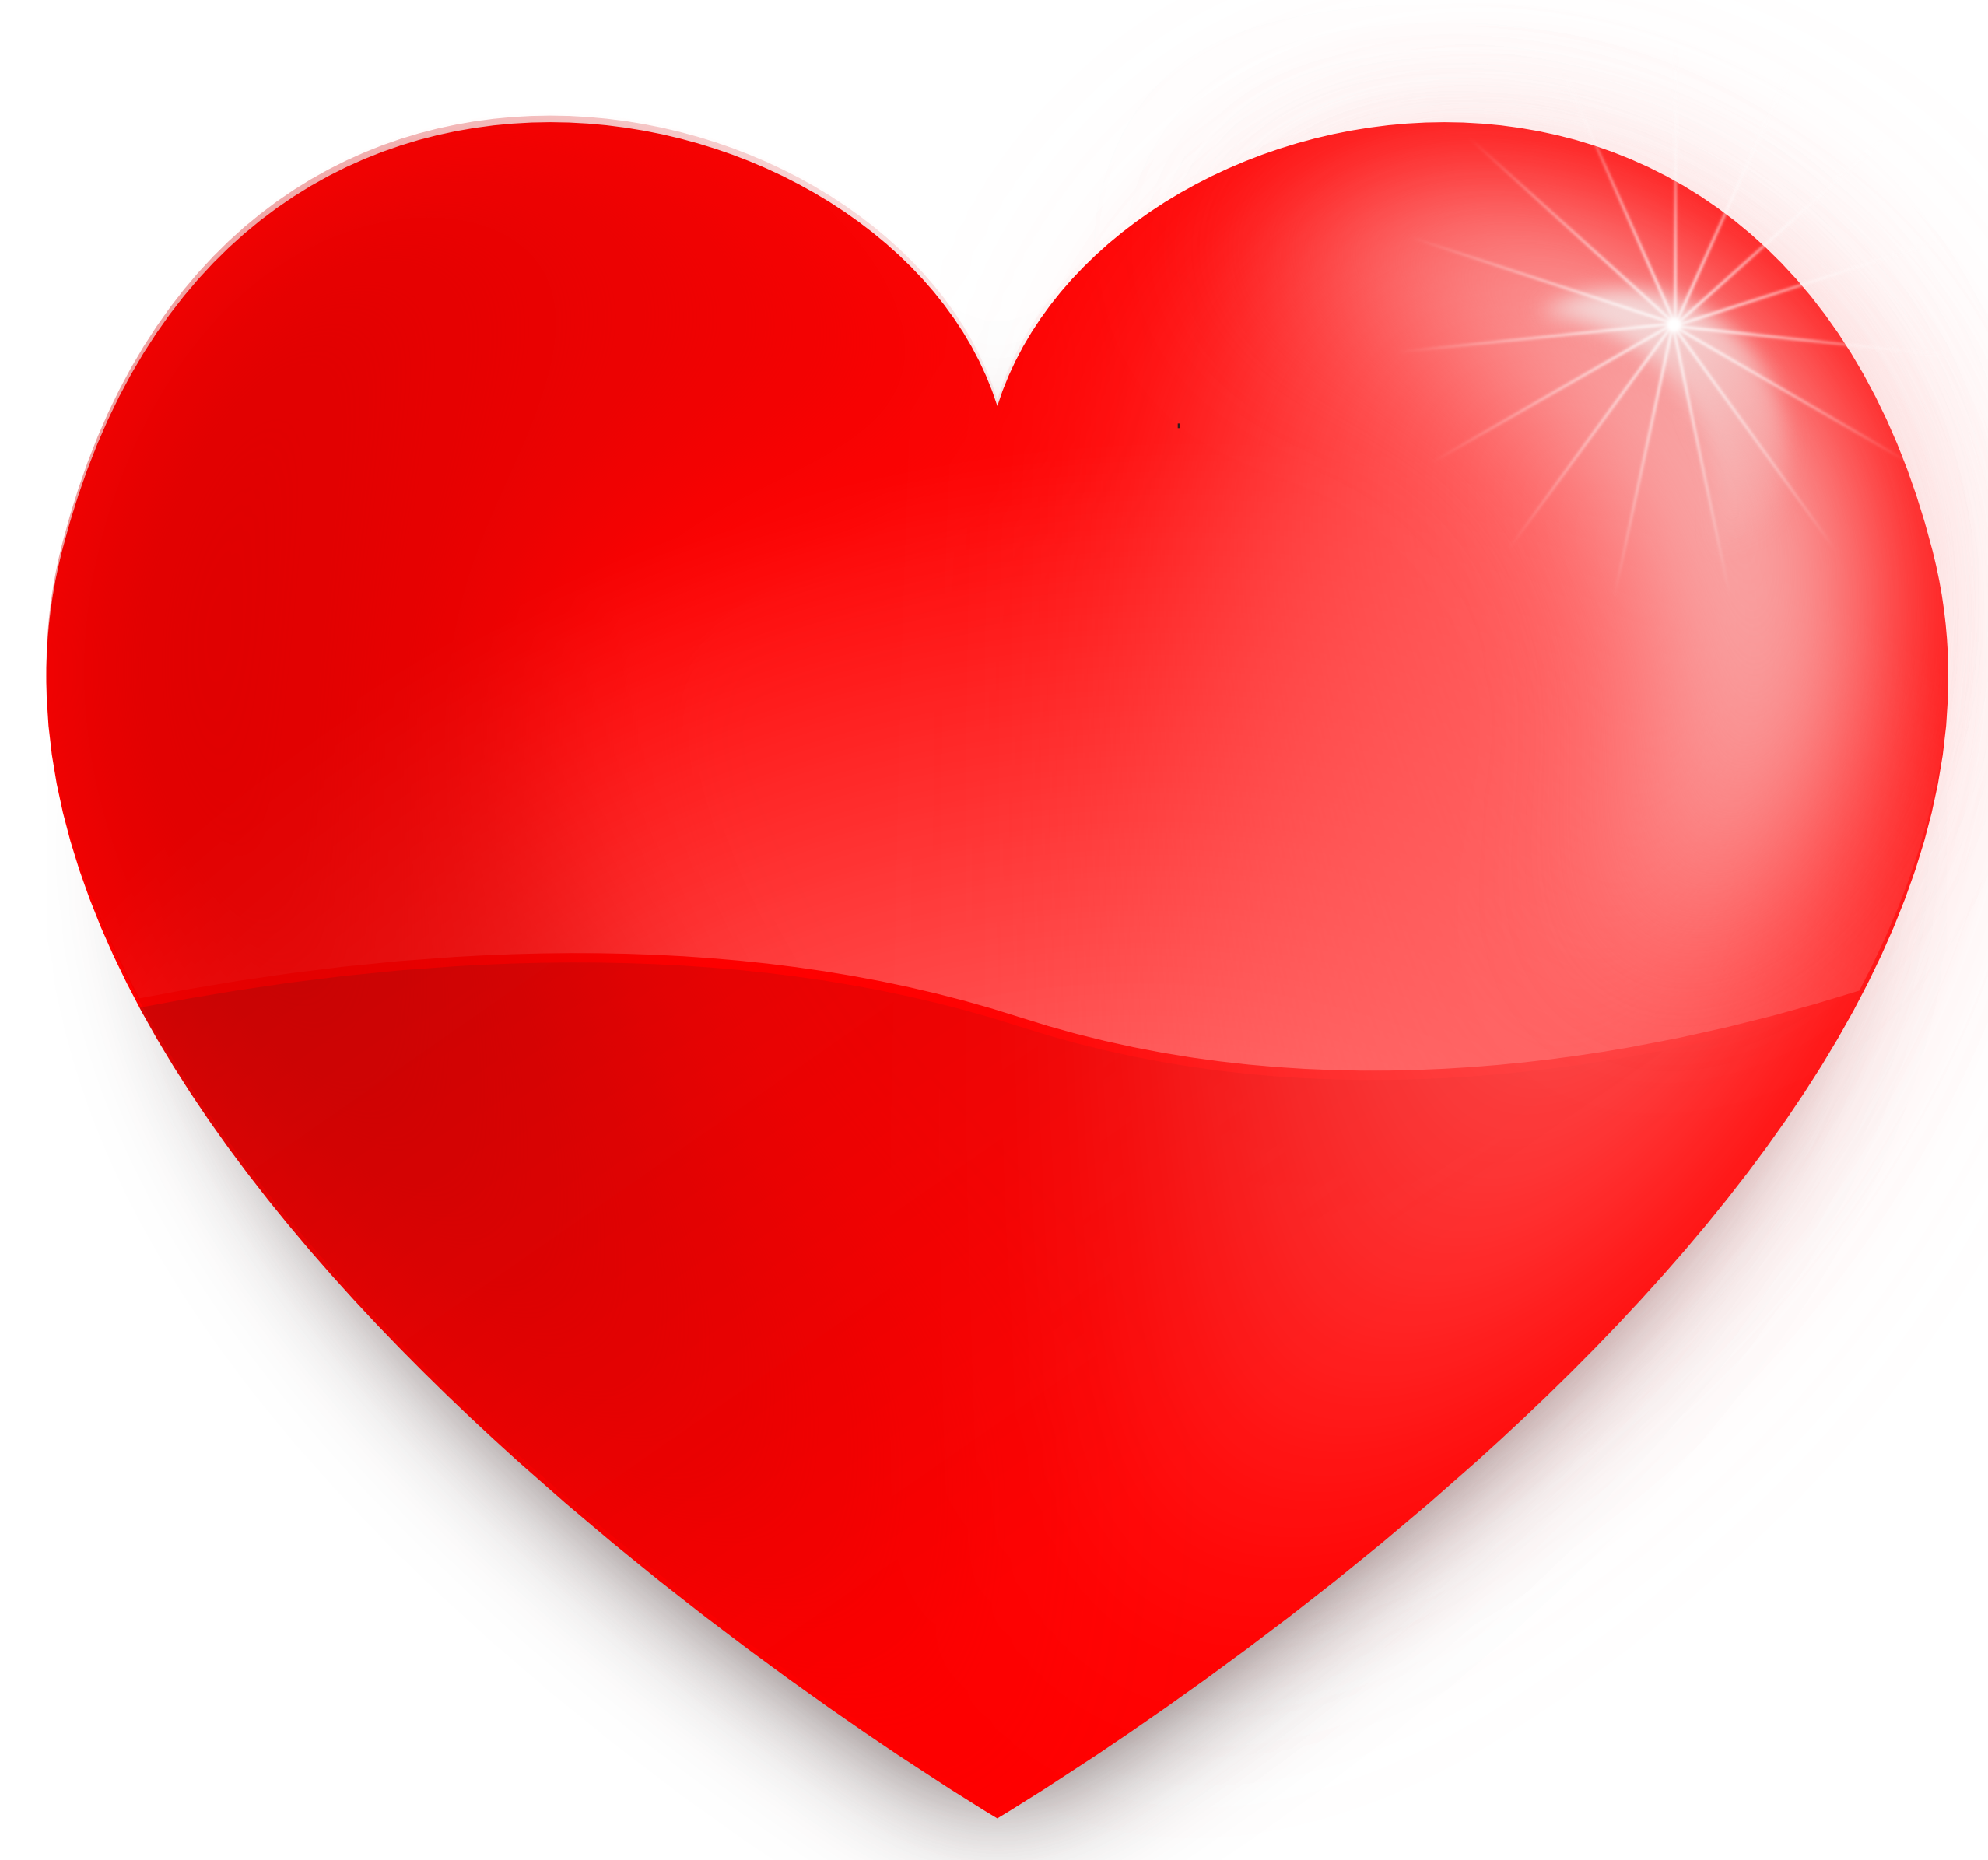 Heart png transparent background. Red image purepng free